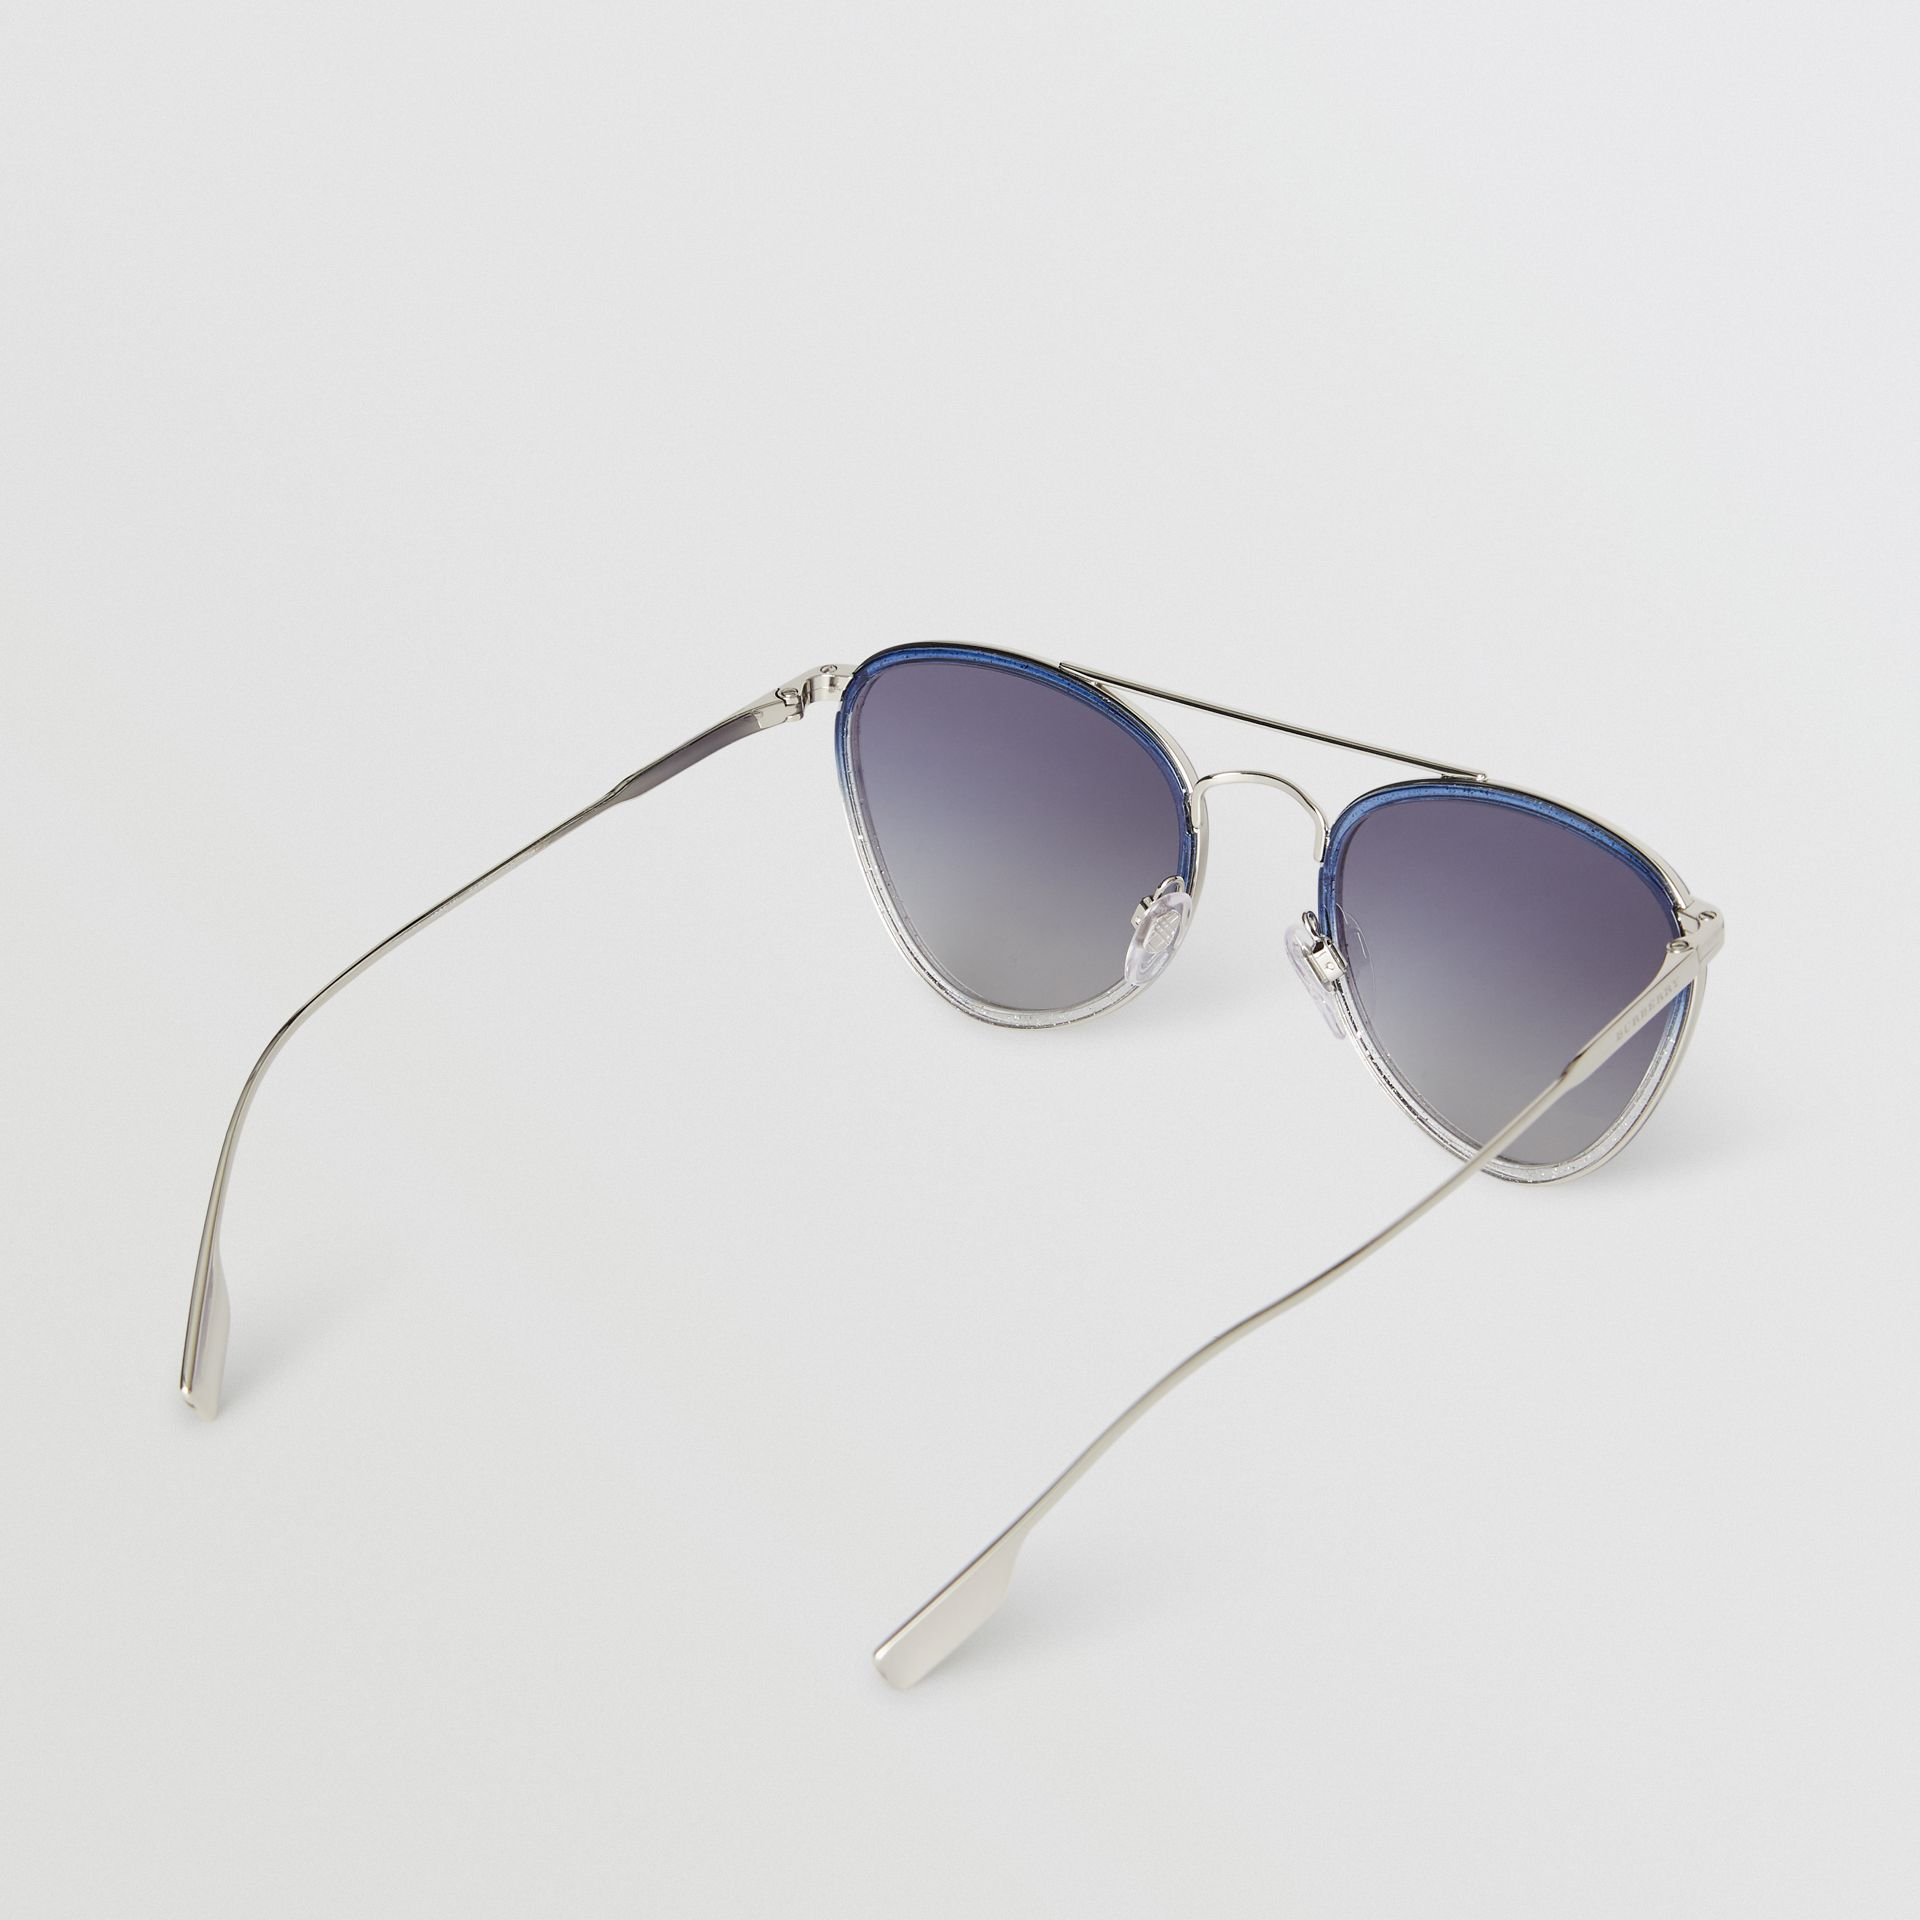 Glitter Detail Pilot Sunglasses in Blue - Women | Burberry Australia - gallery image 4